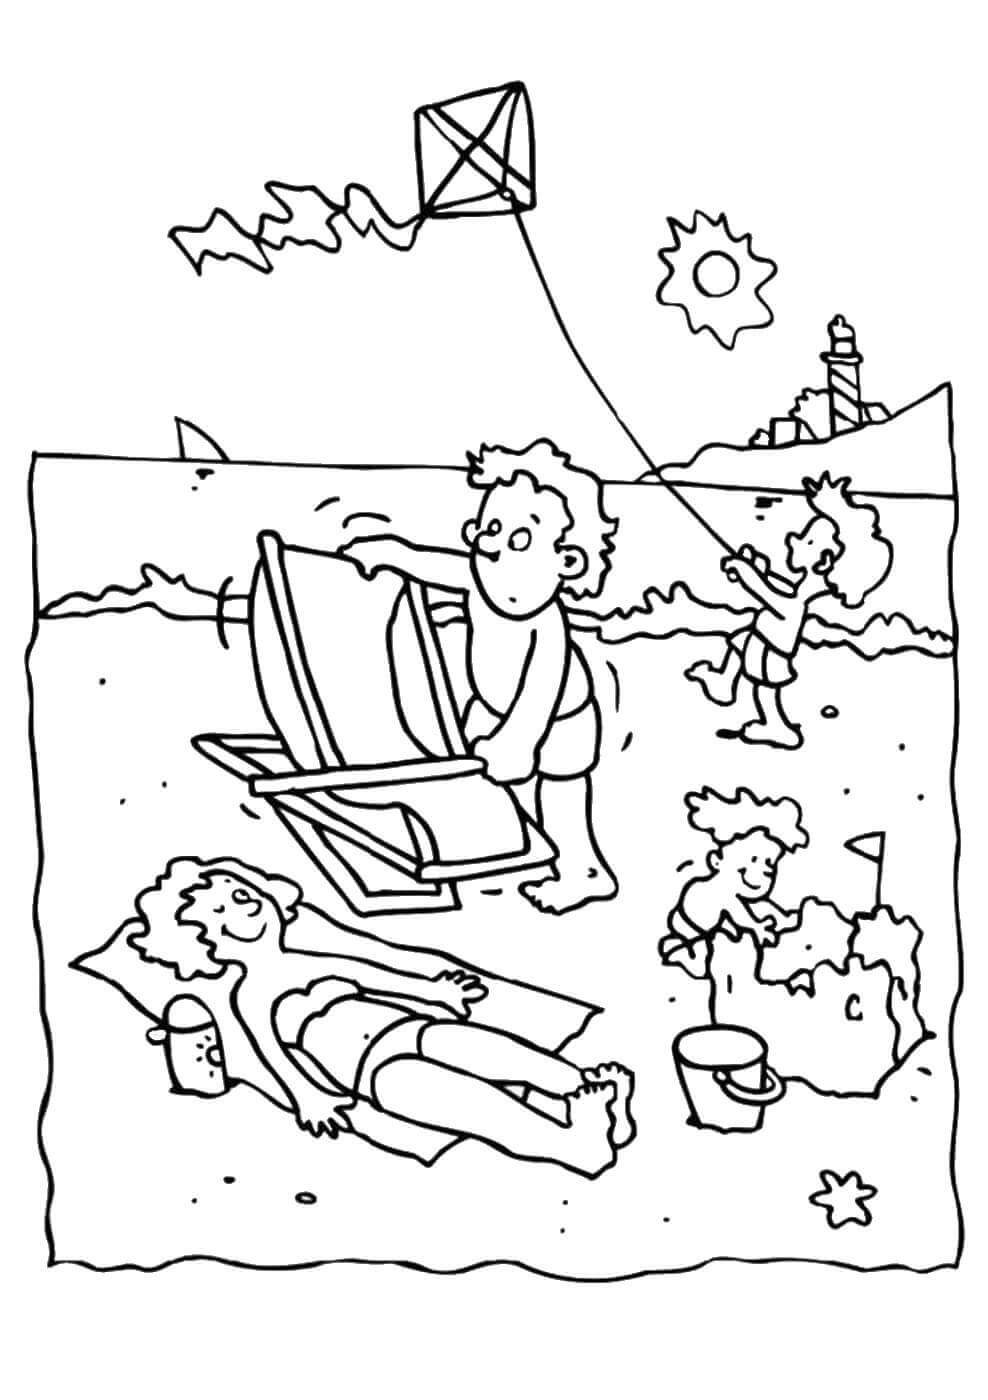 Beach Coloring Pages For Kids  25 Free Printable Beach Coloring Pages